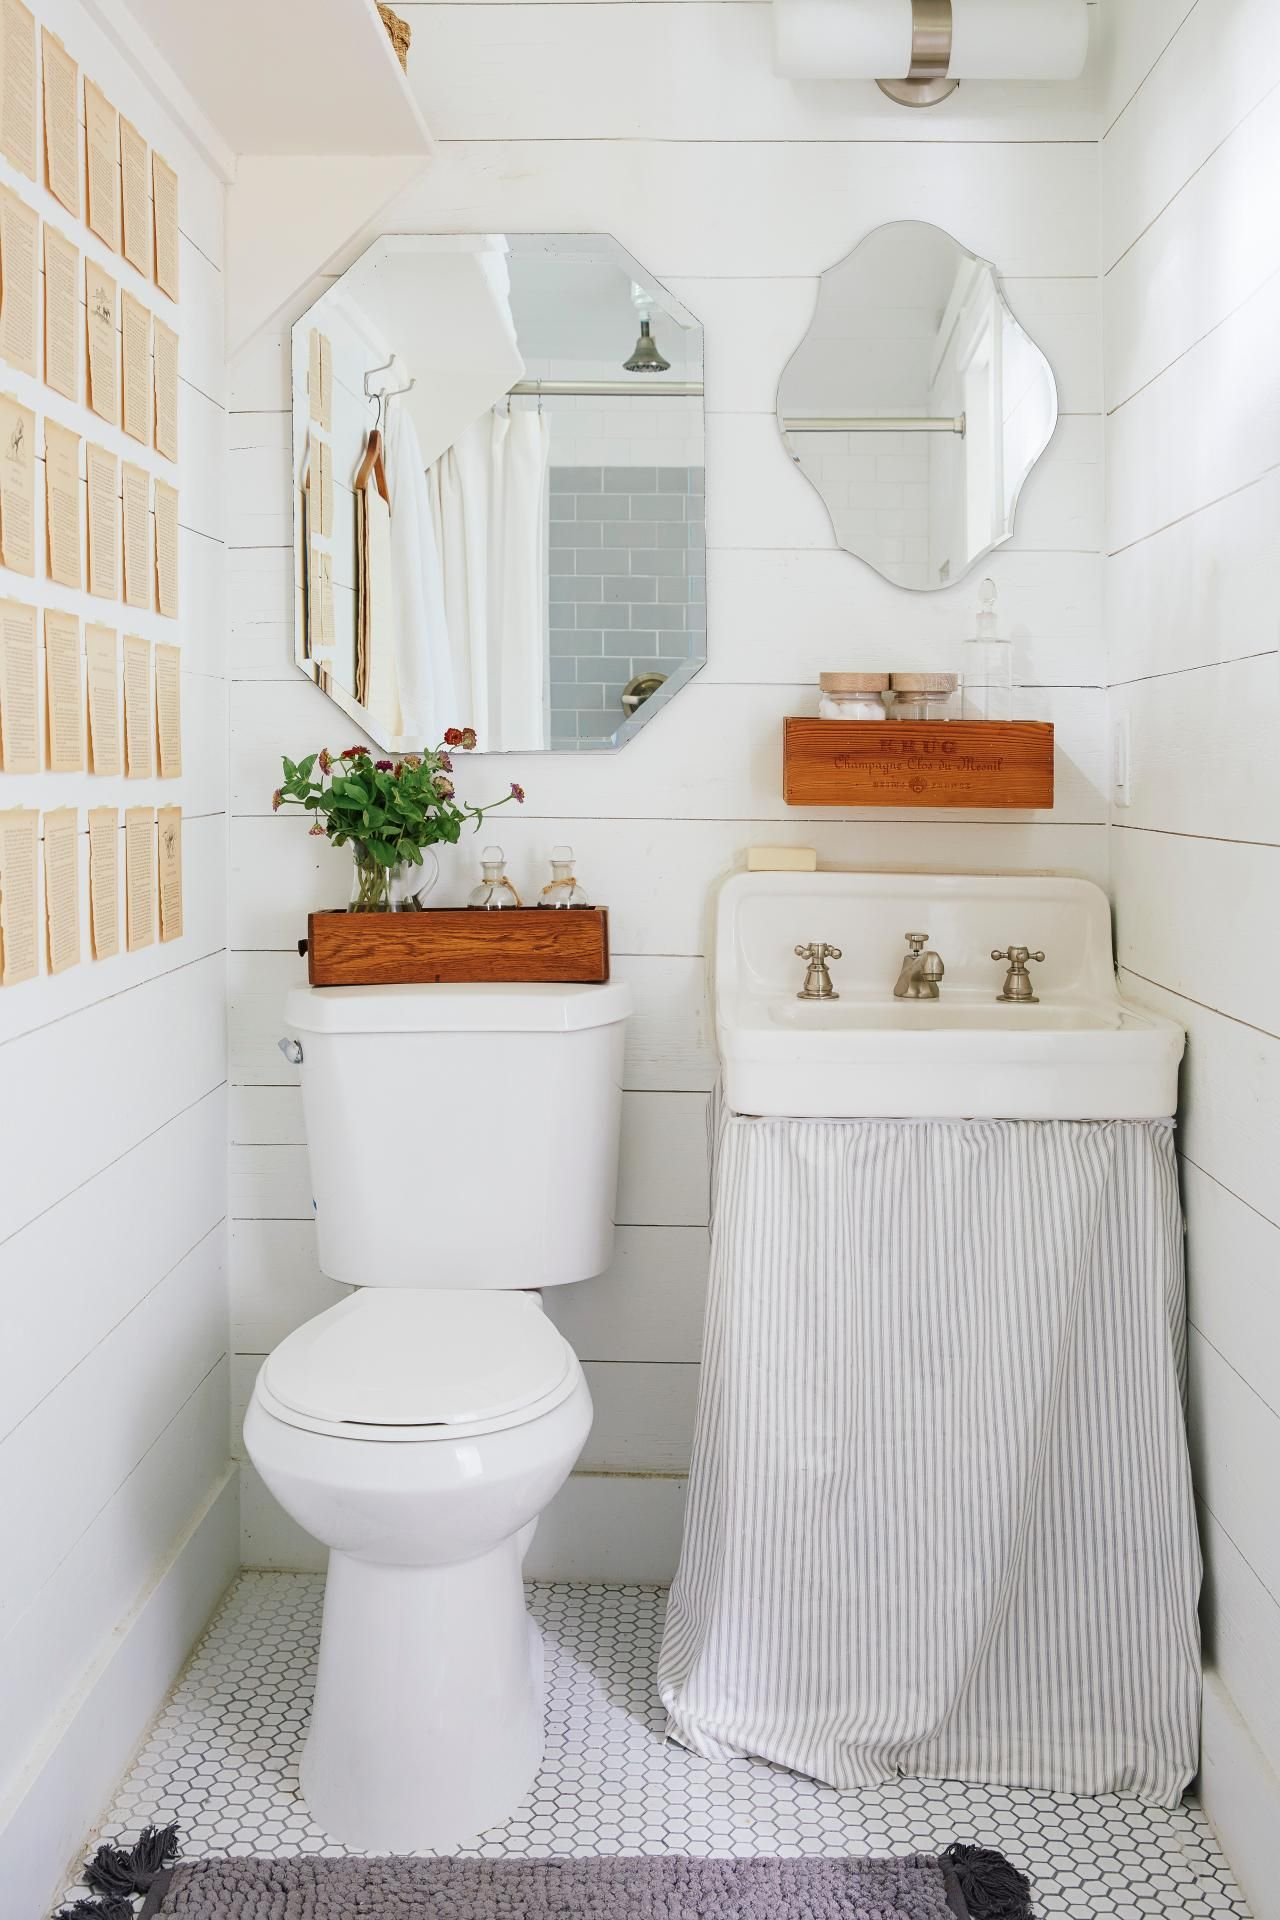 8 Ways to Tackle Storage in a Tiny Bathroom | Wine boxes, Extra ...